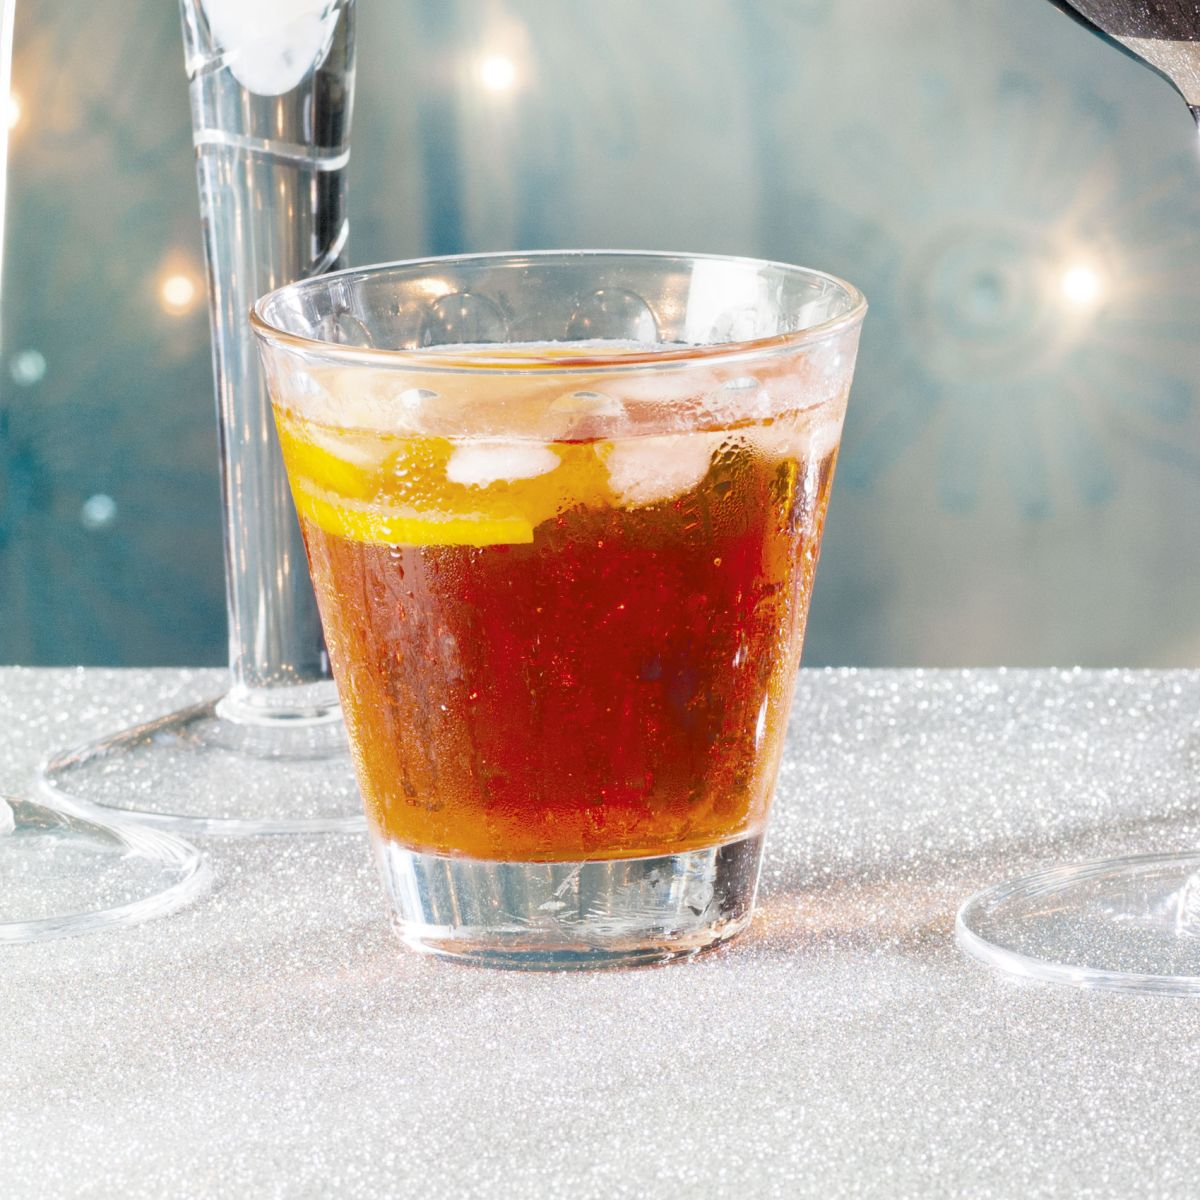 Imagine yourself in Italy with this summery zesty aperol spritz recipe